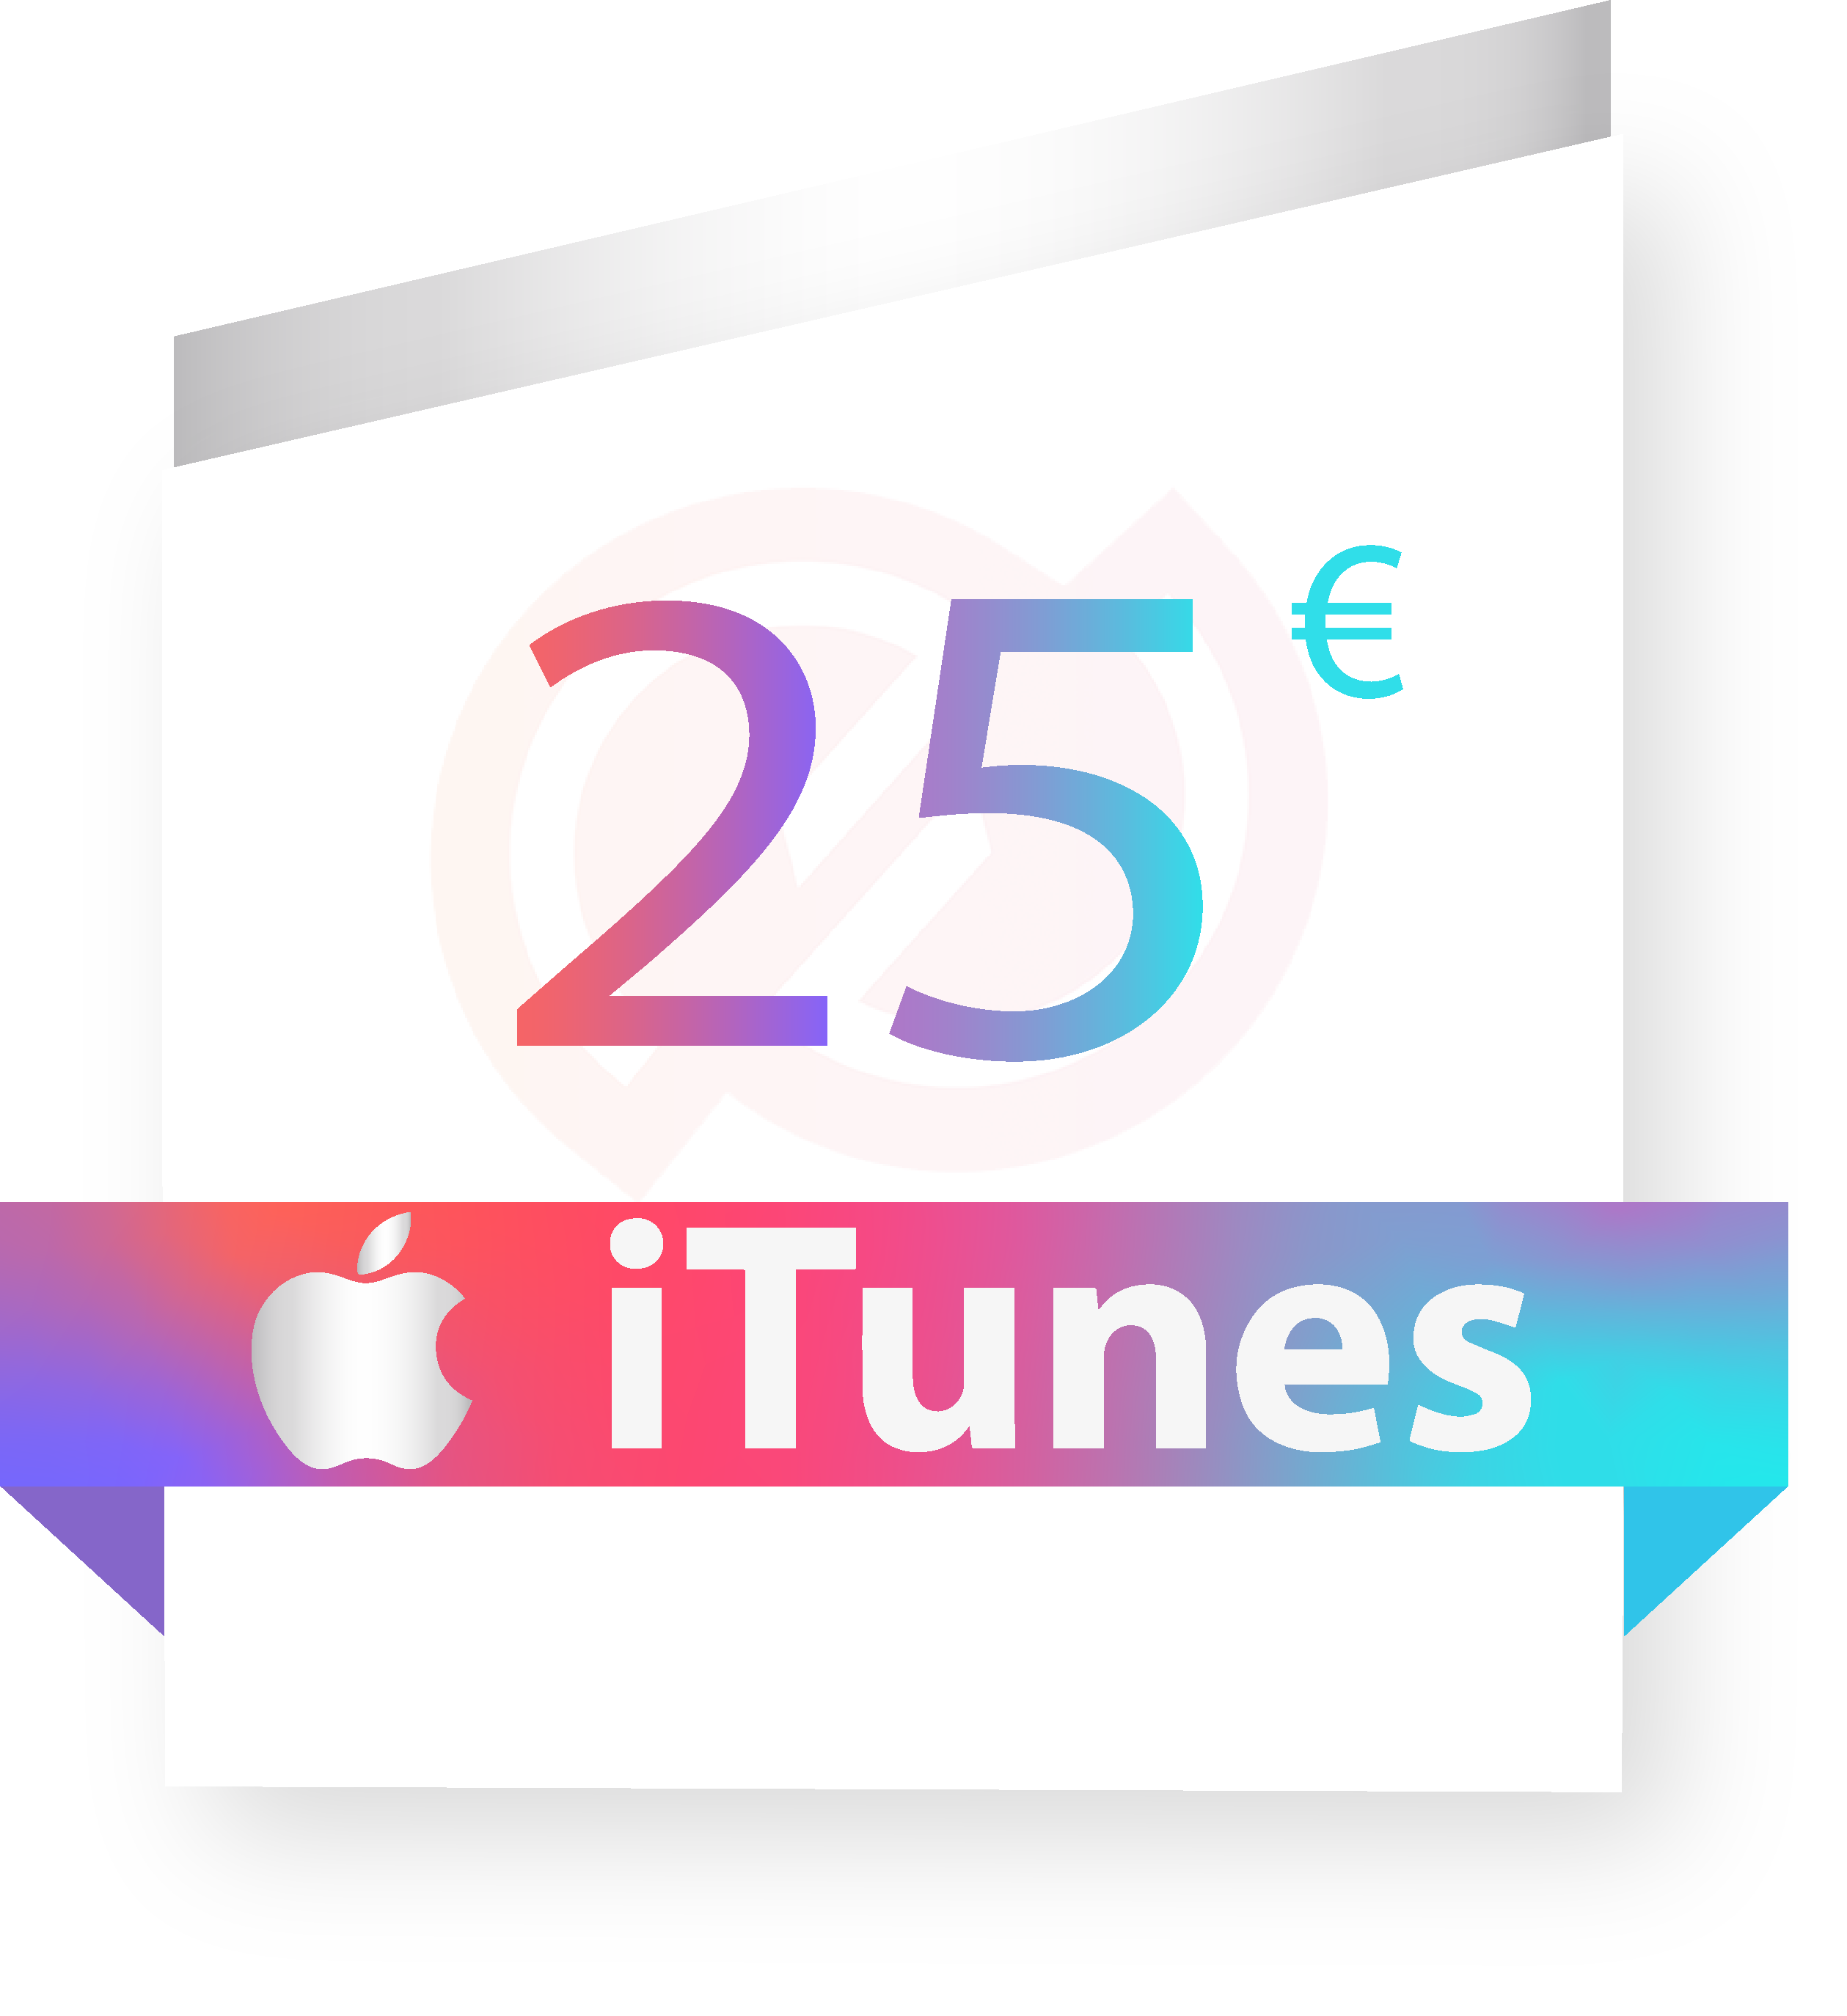 Coupon iTunes 25€ sur internet - Gueez